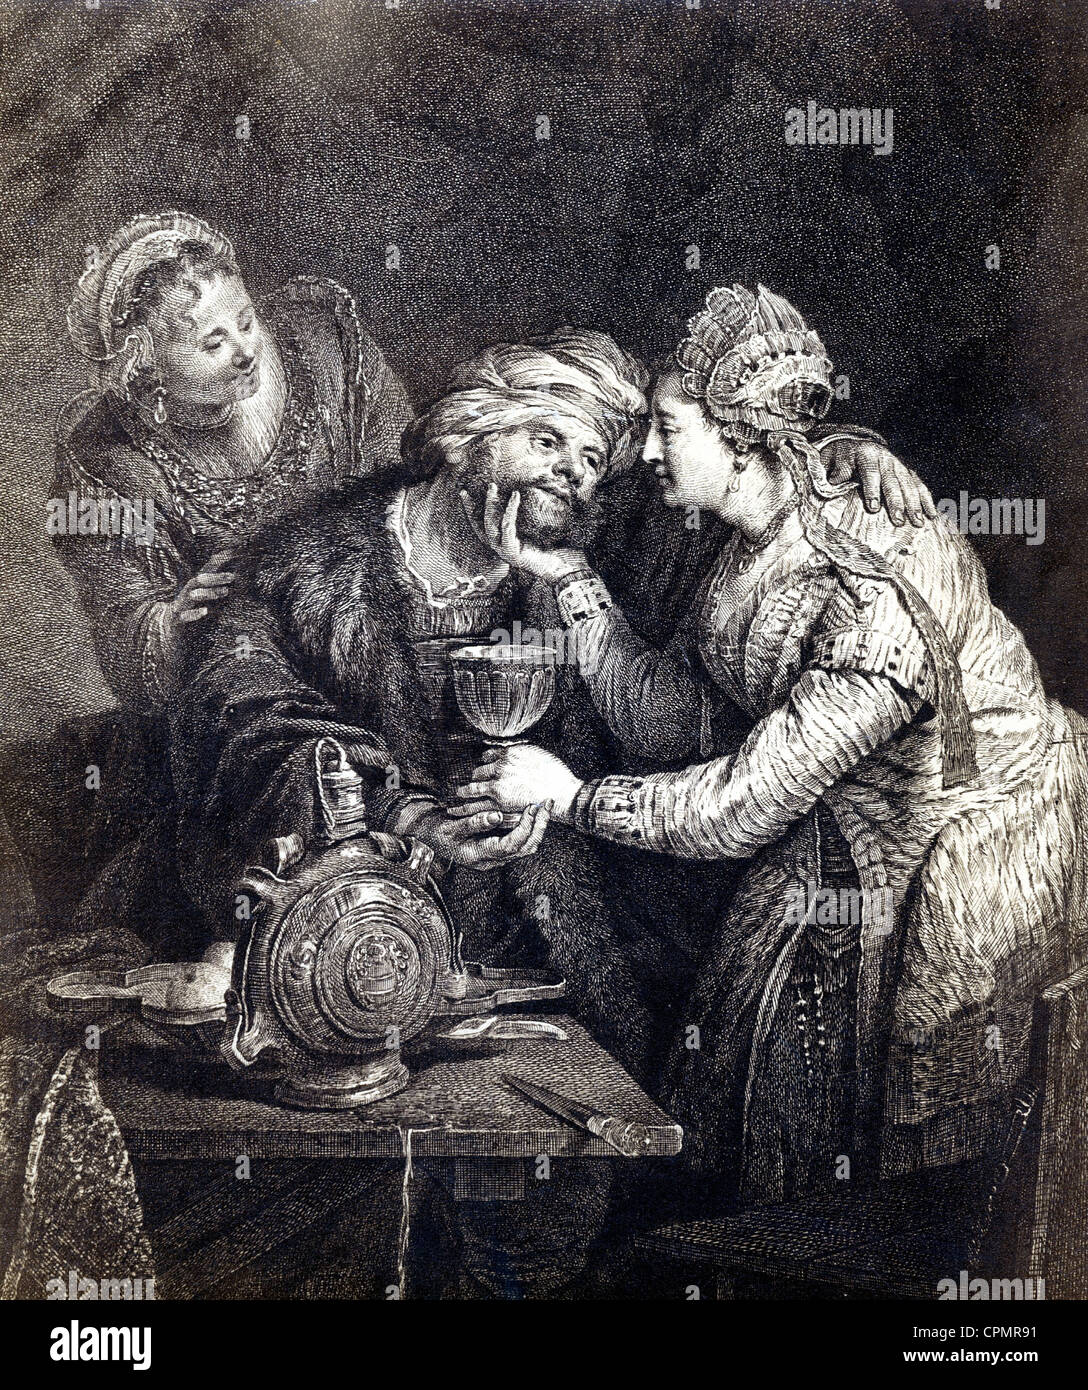 'Lot and his daughters', etching by G.F. Schmidt, after a painting by Rembrandt - Stock Image